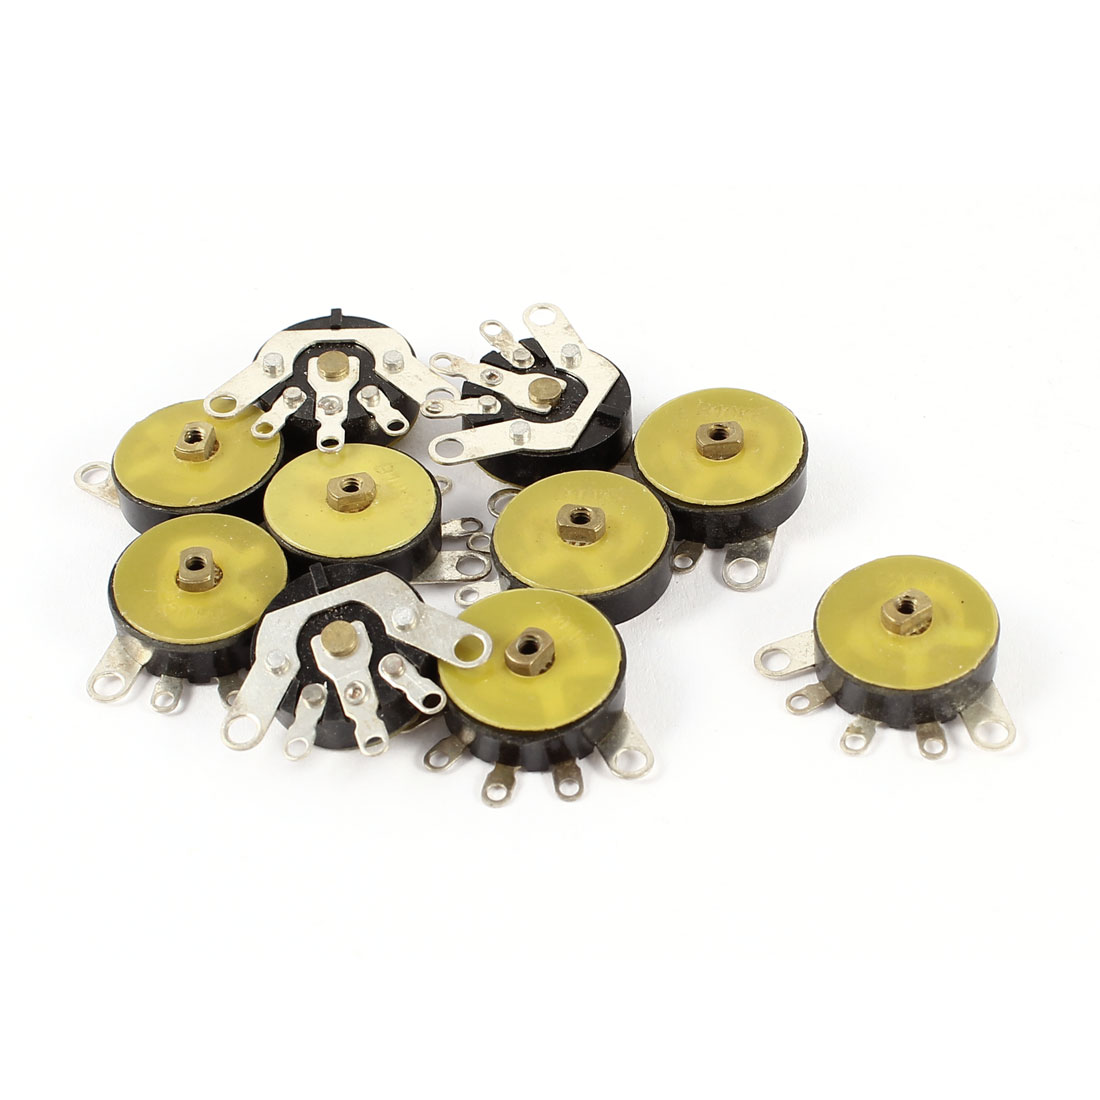 10 Pieces B103 13mm Dia 5 Terminal Yellow Adjustable Potentiometer 10K Ohm